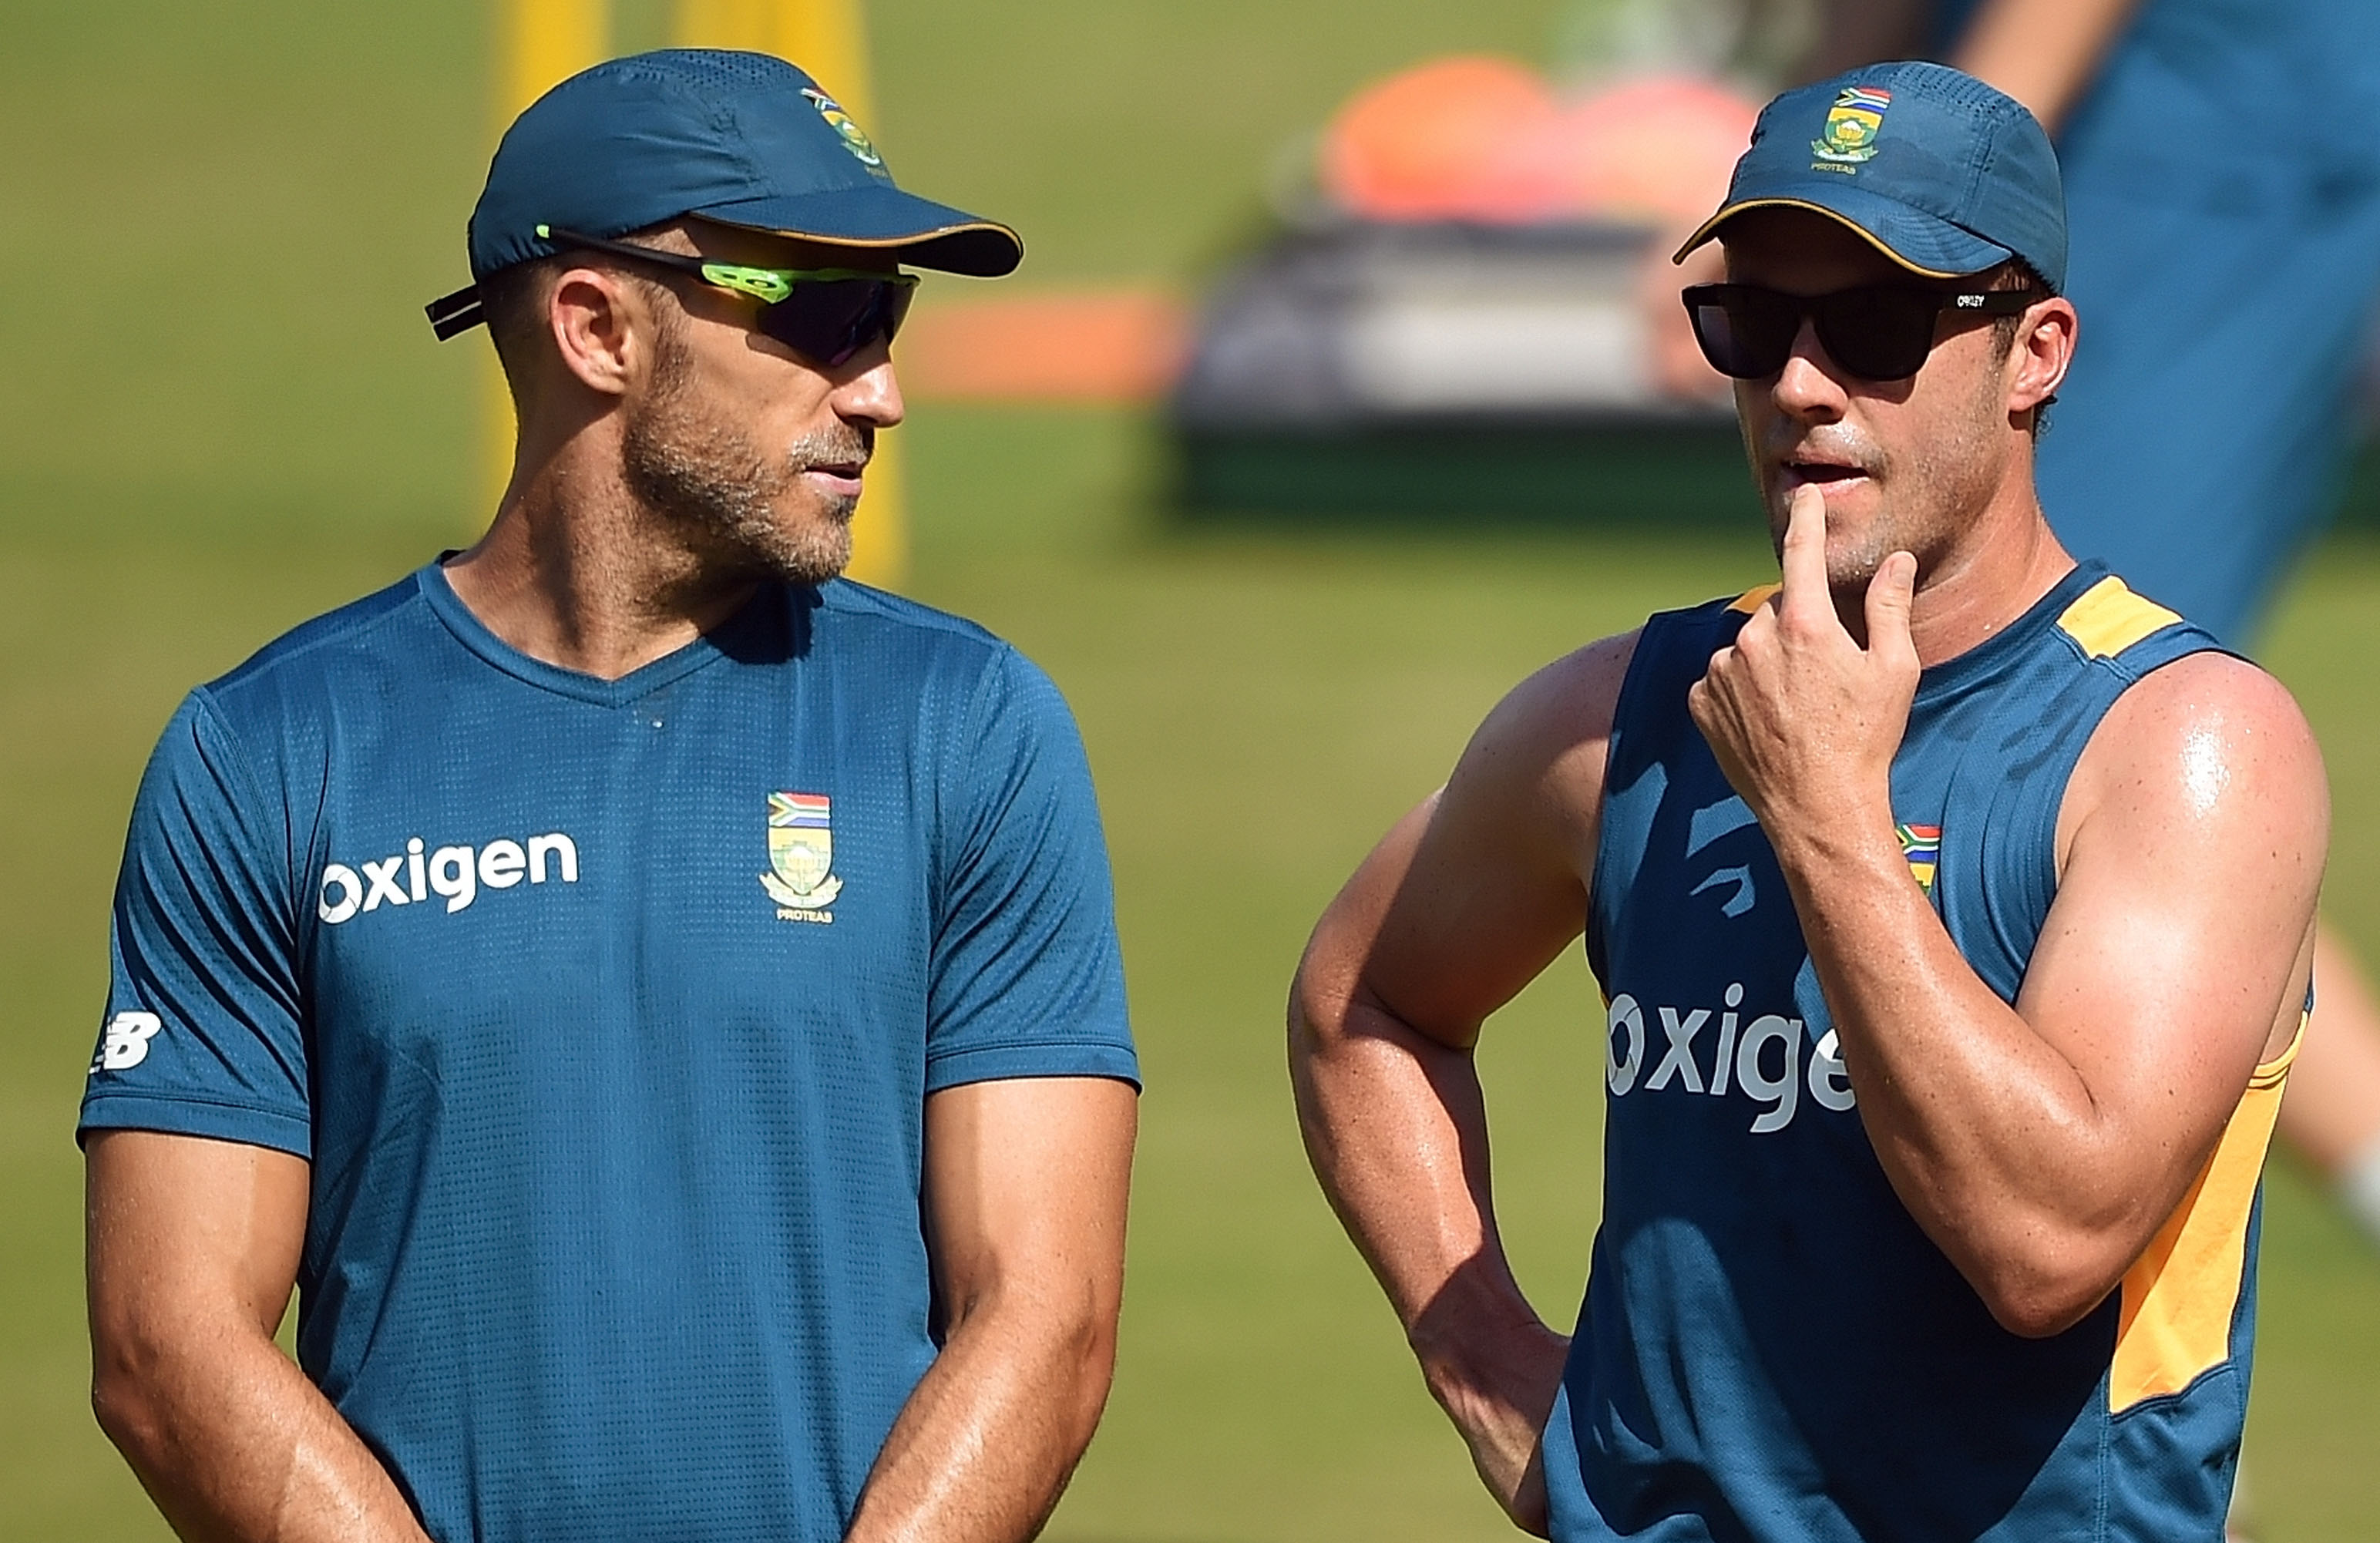 Du Plessis and de Villiers at the 2016 World T20 // Getty